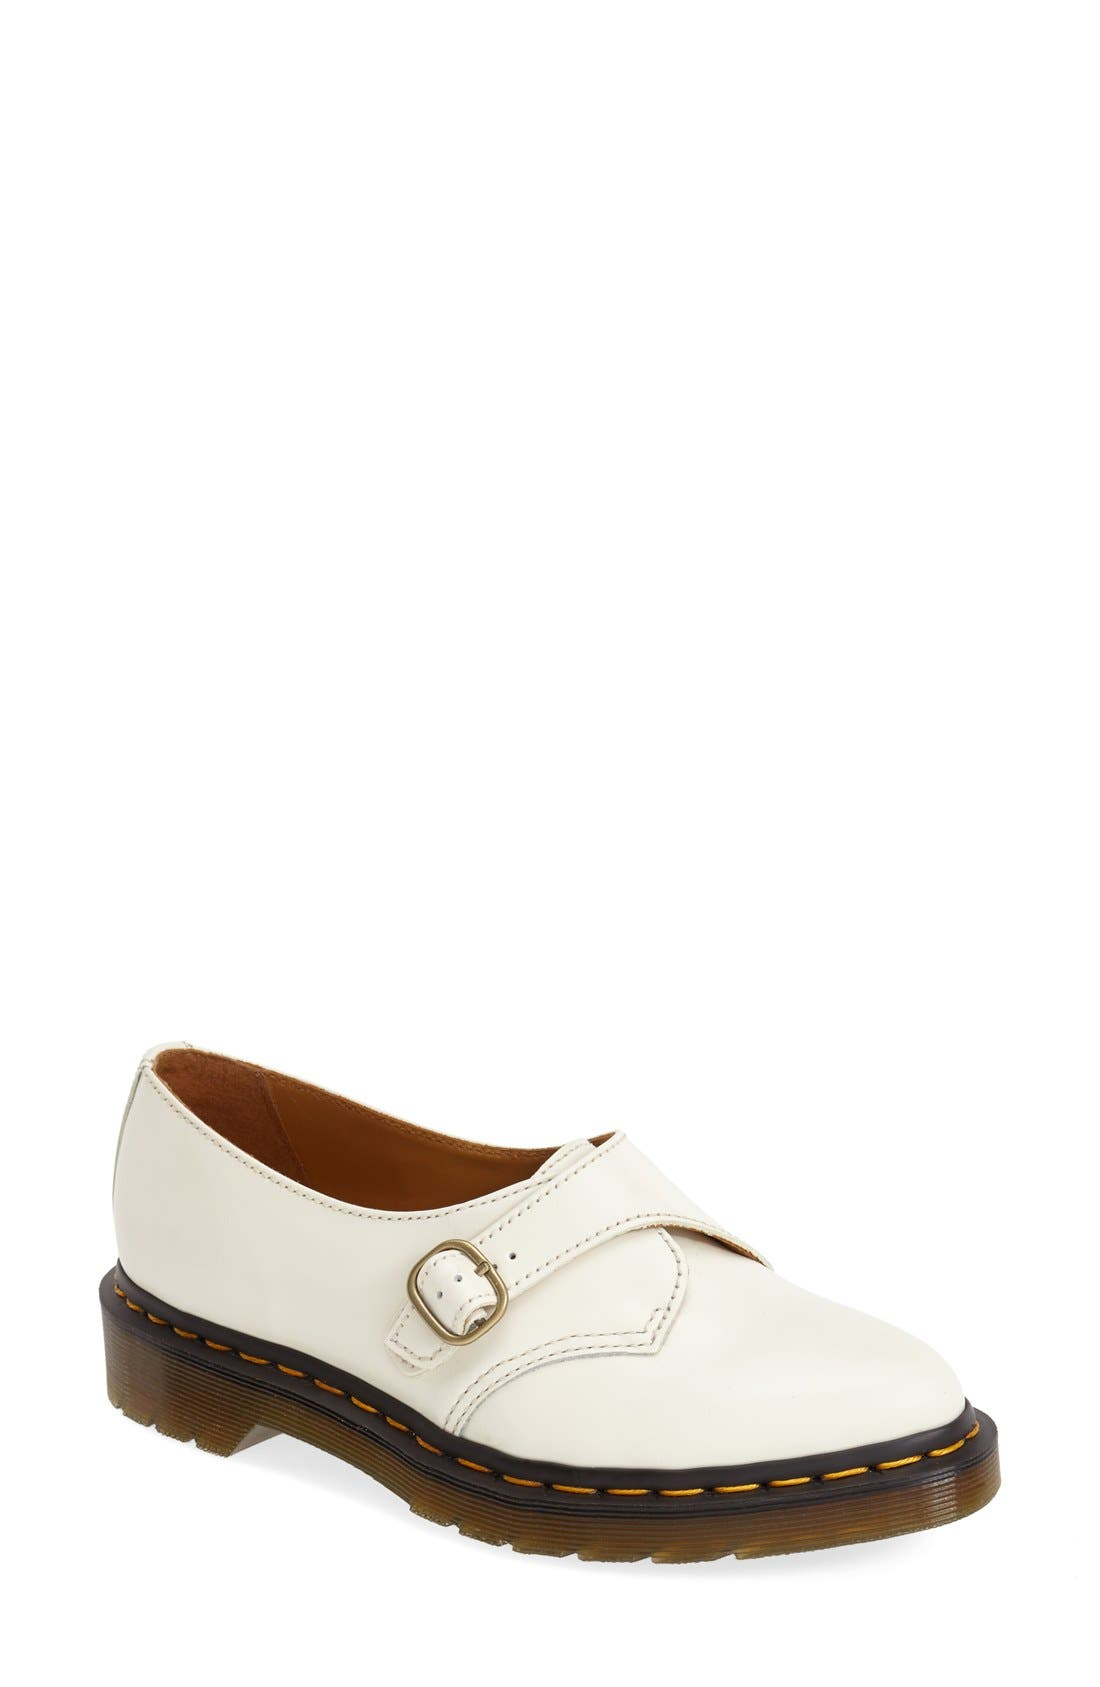 'Agnes' Monk Strap Flat, Main, color, 100